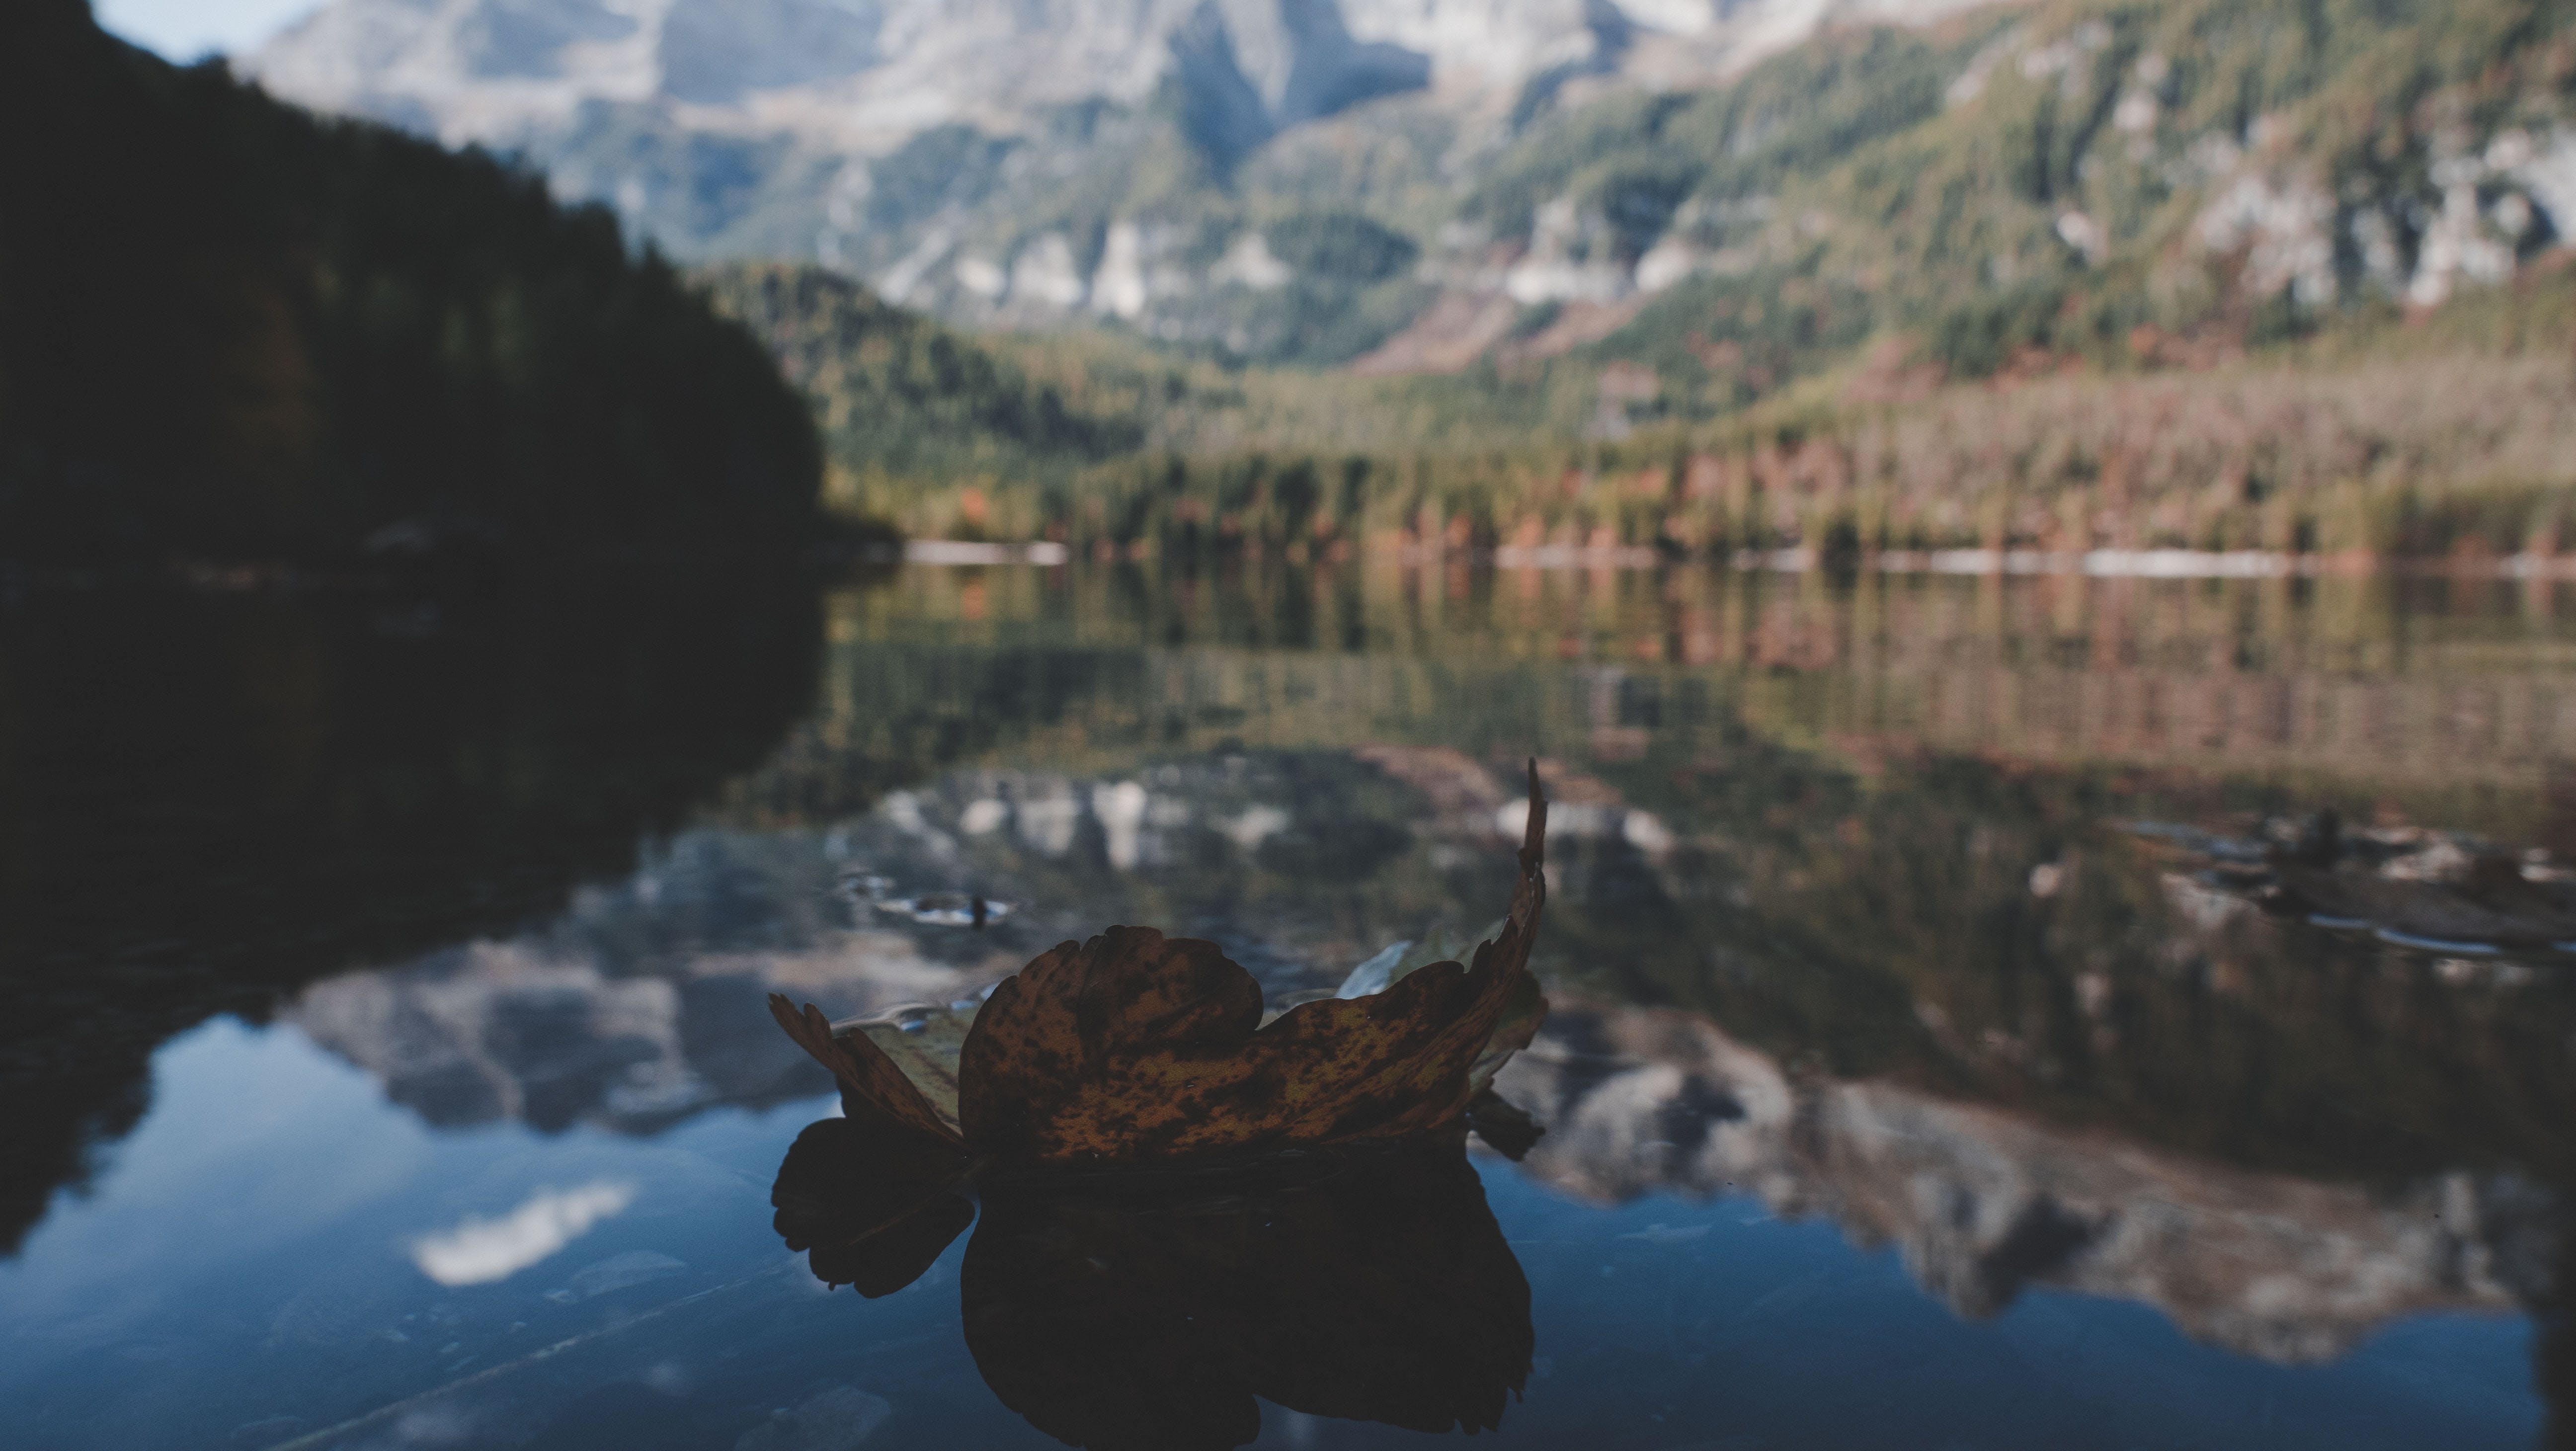 Withered Leaf On Water In Shallow Photography